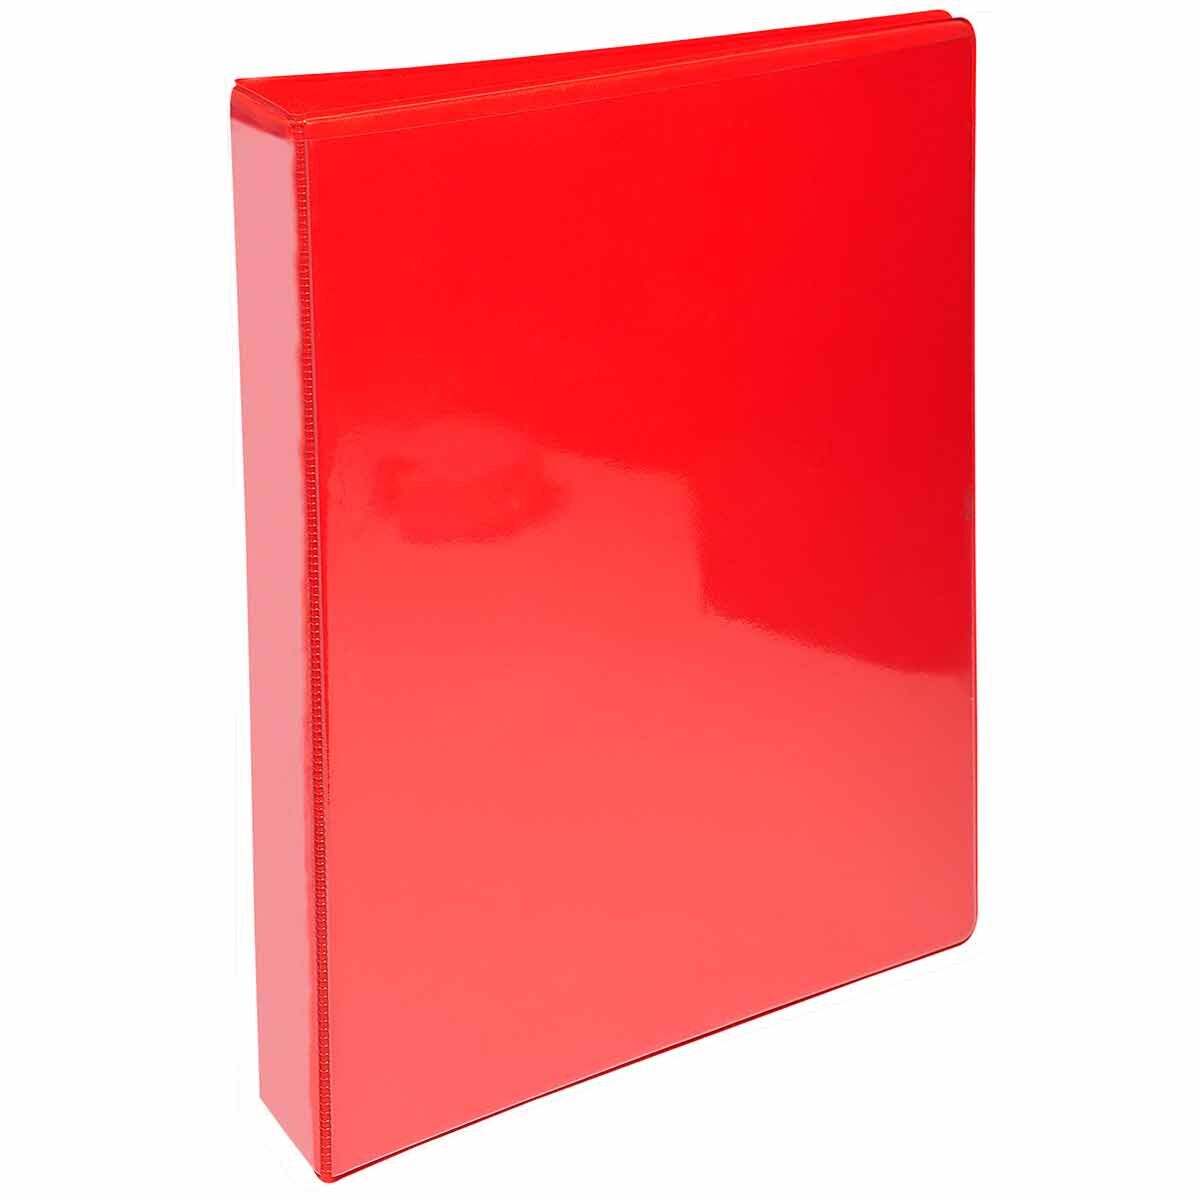 Exacompta Kreacover Personal Ring Binder A4 Plus 2 Rings 25mm Pack of 10 Red